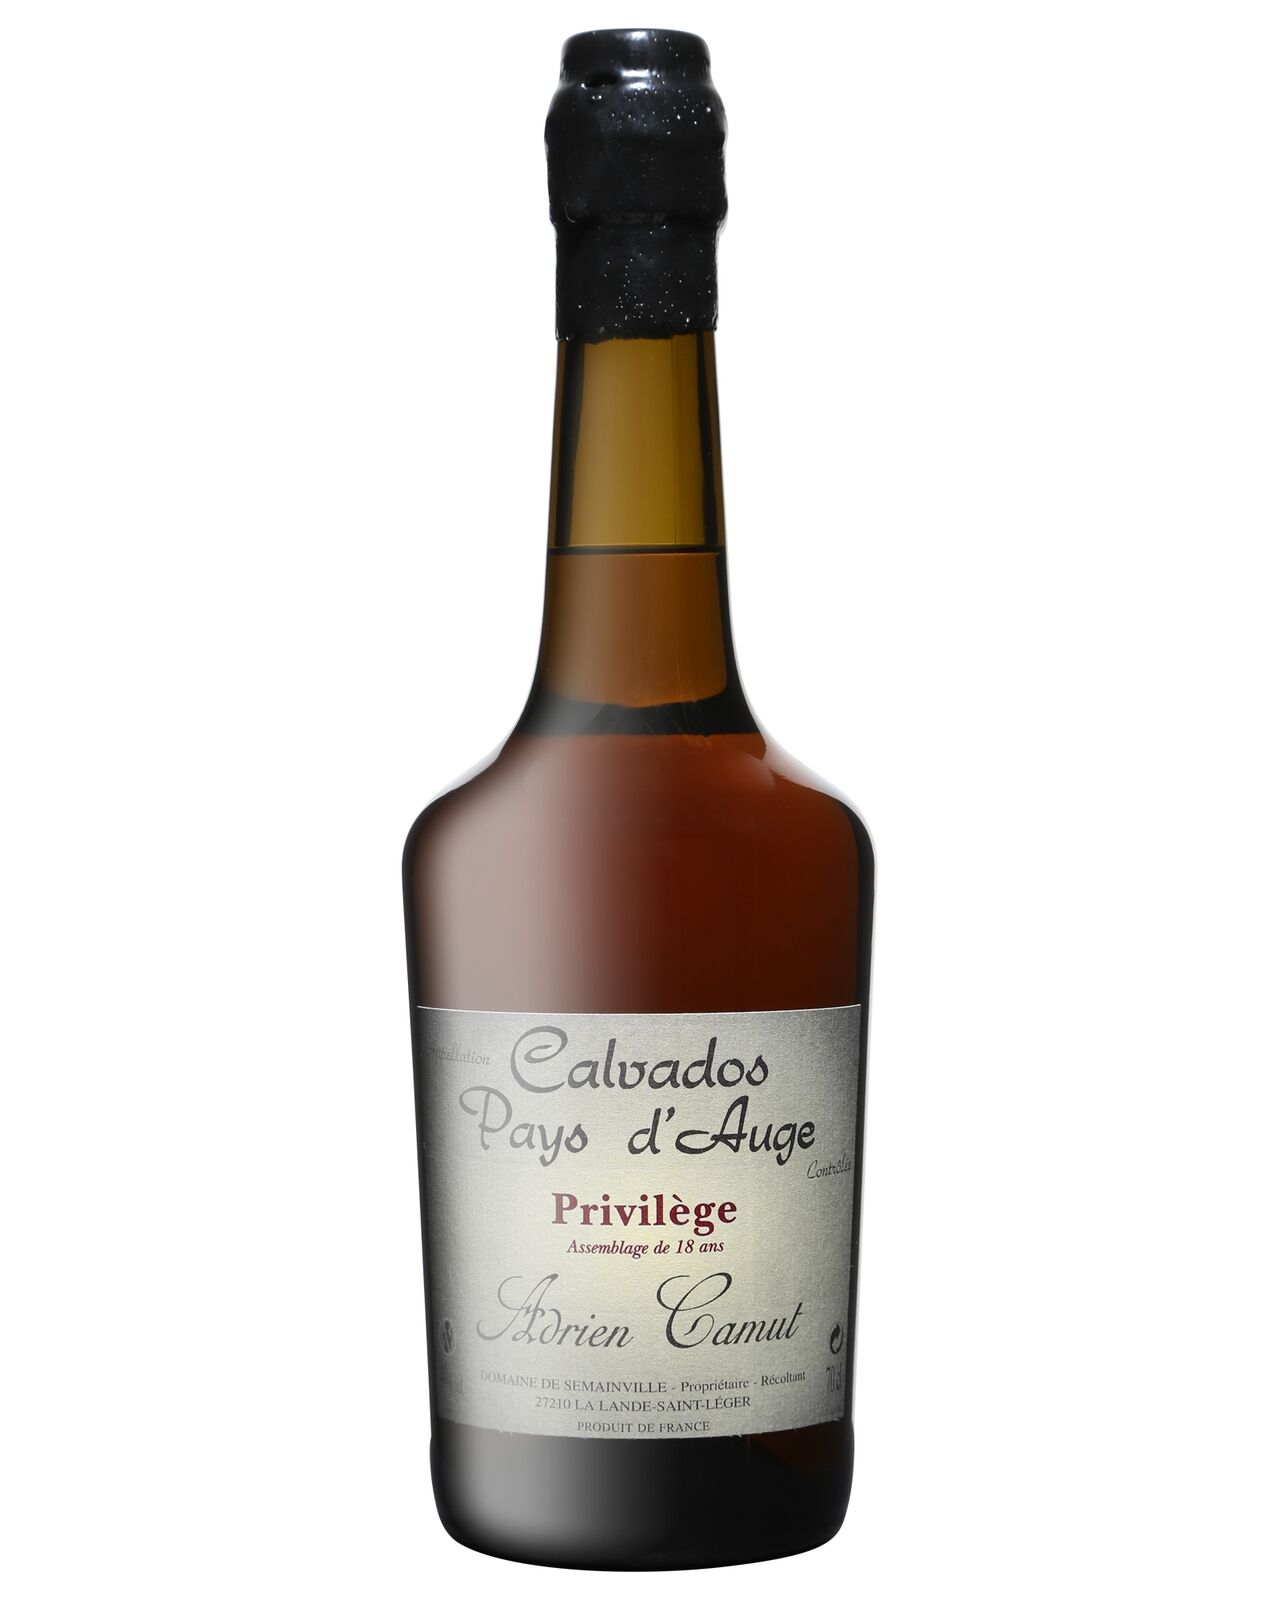 Adrien Camut Calvados Pays d'Auge 18 Years Old 700mL bottle